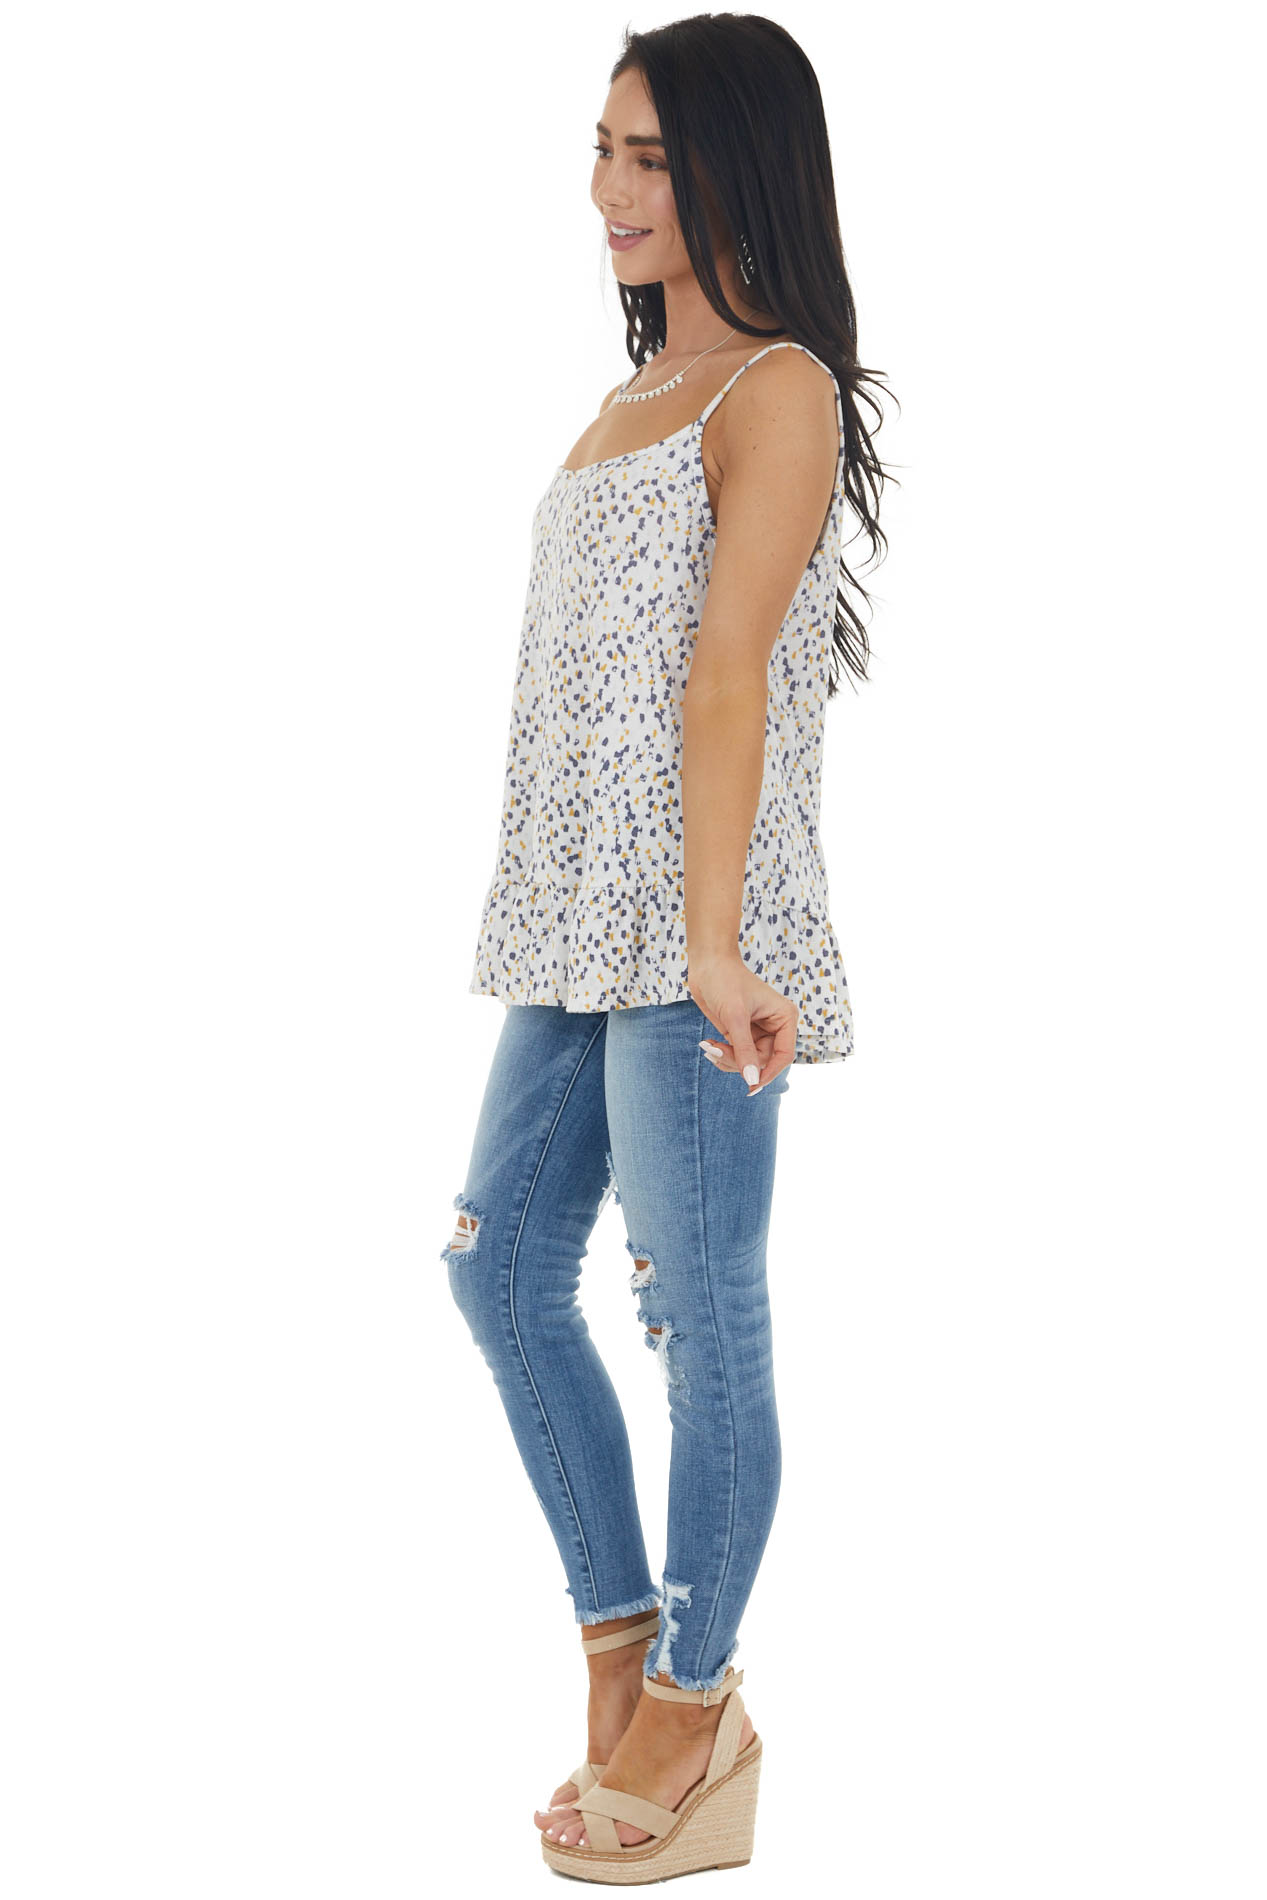 Ivory Printed Sleeveless Knit Top with Ruffle Hemline